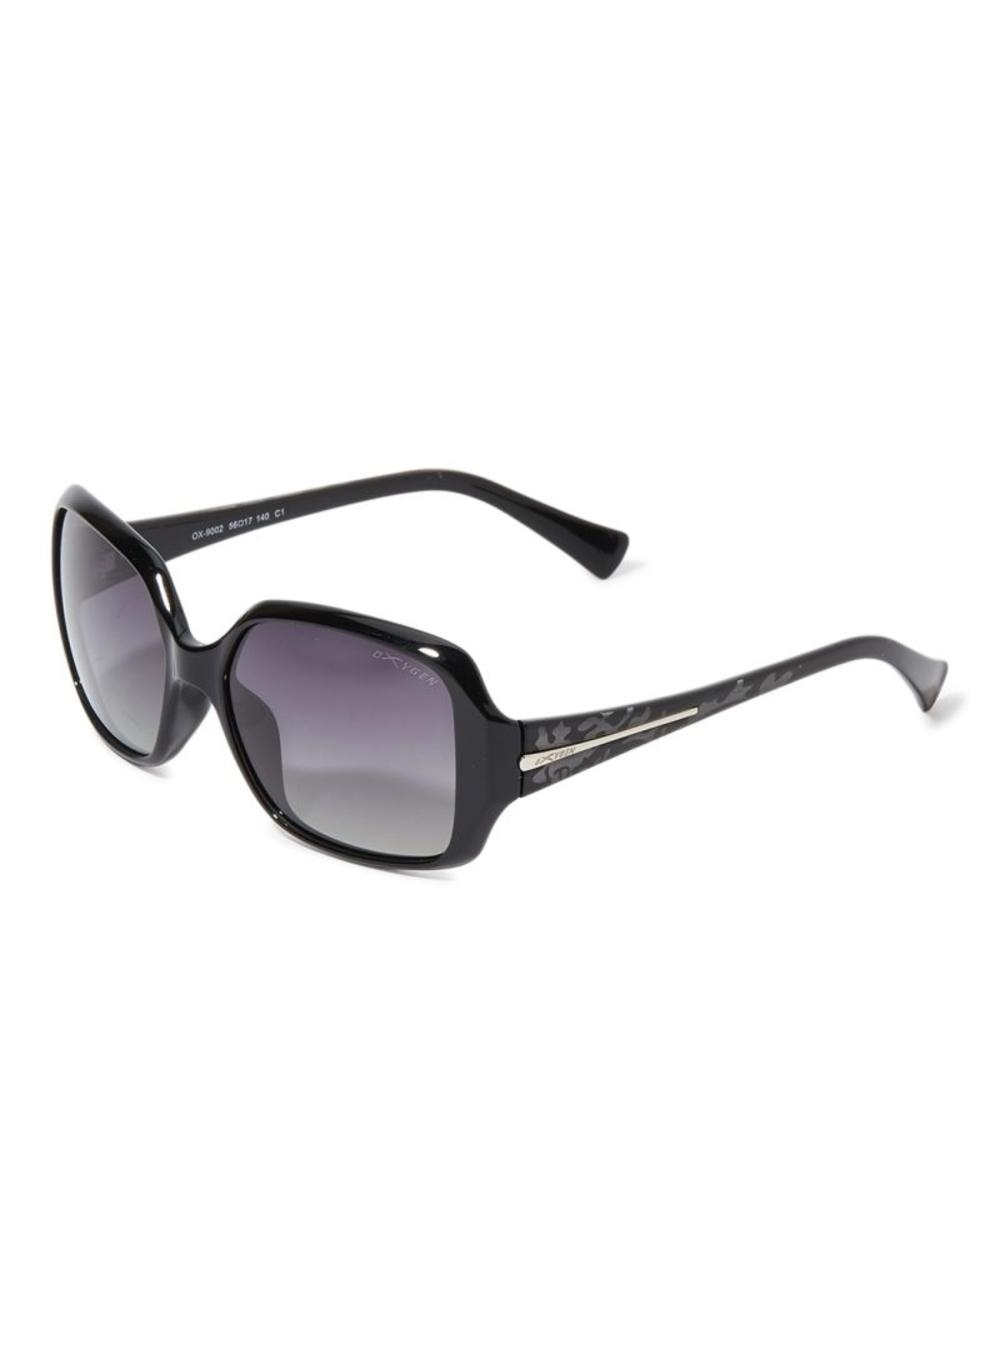 OXYGEN Women's Designed Rectagular Frame UV protection Sunglasses OX9002-C1